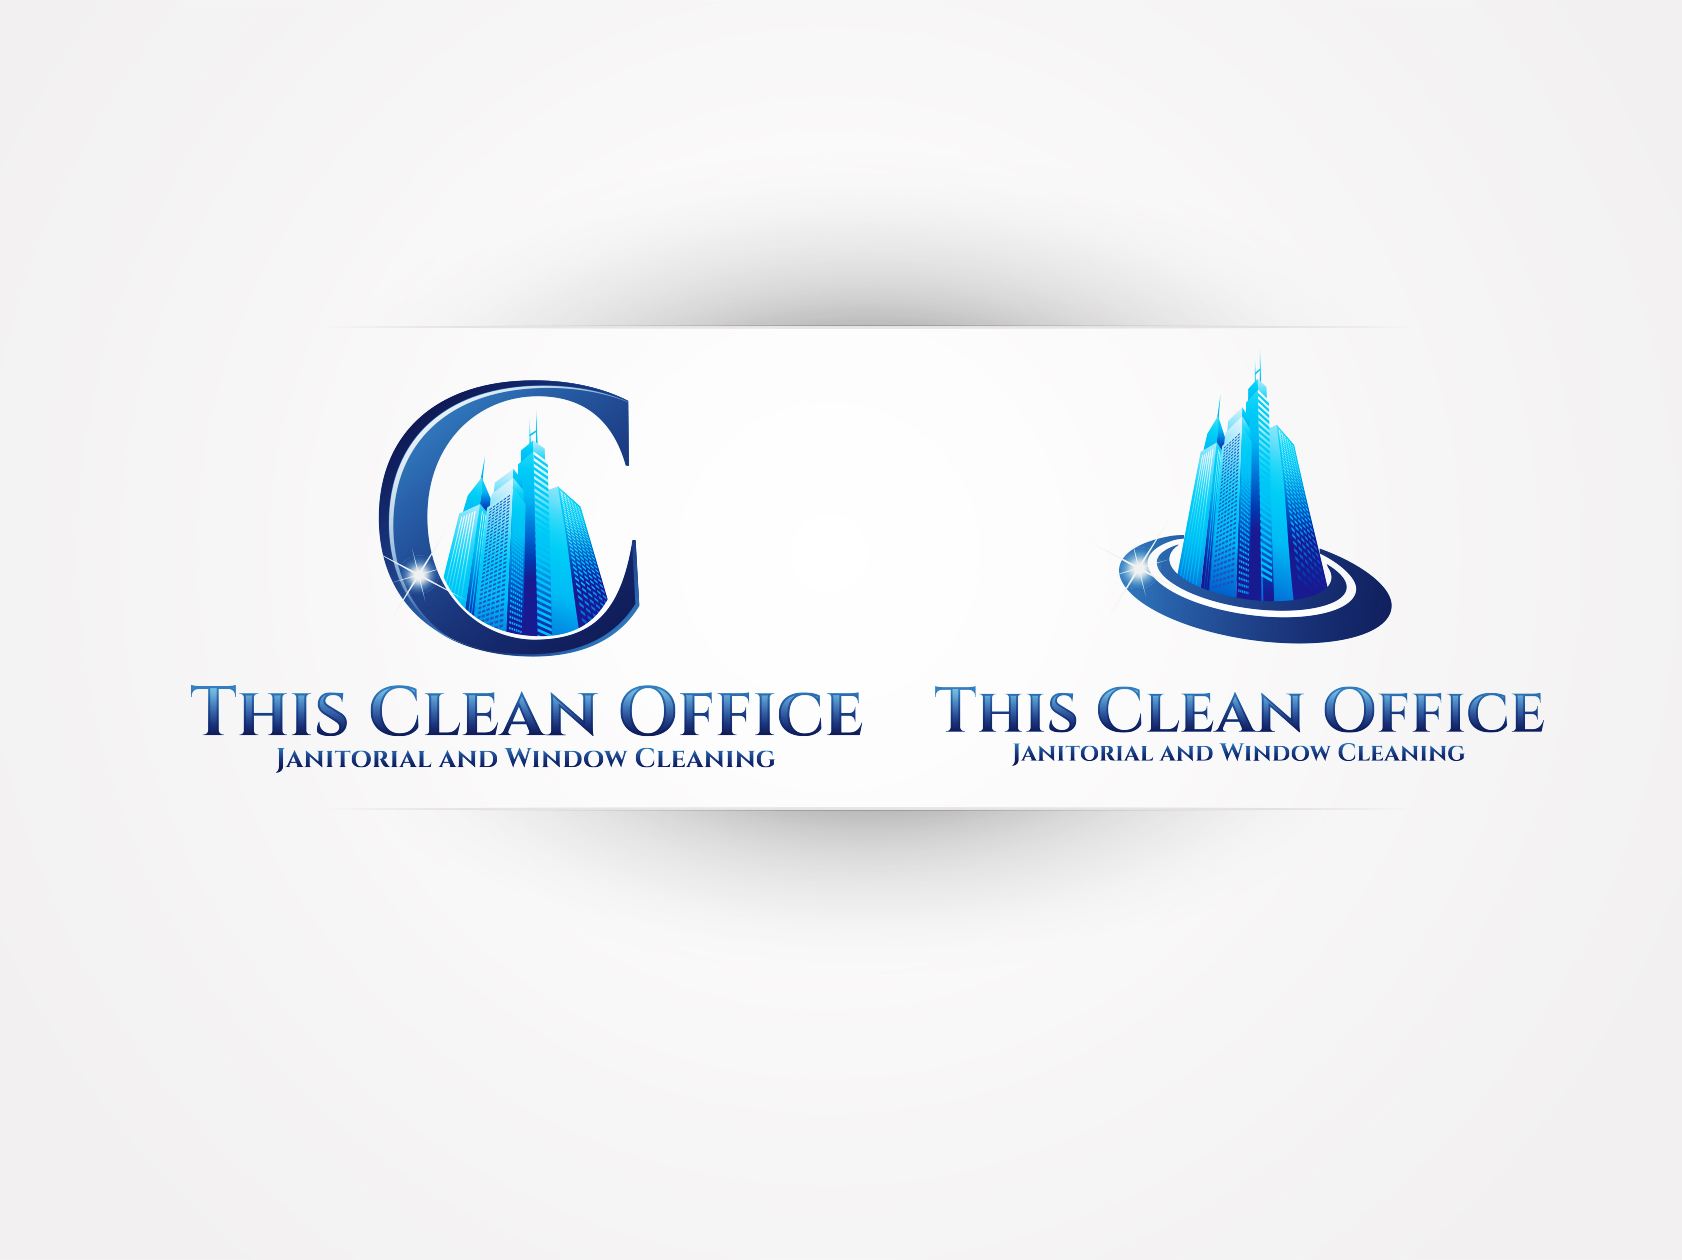 Logo Design by OmegaDesigns - Entry No. 71 in the Logo Design Contest Professional and Unforgettable Logo Design for This Clean Office.